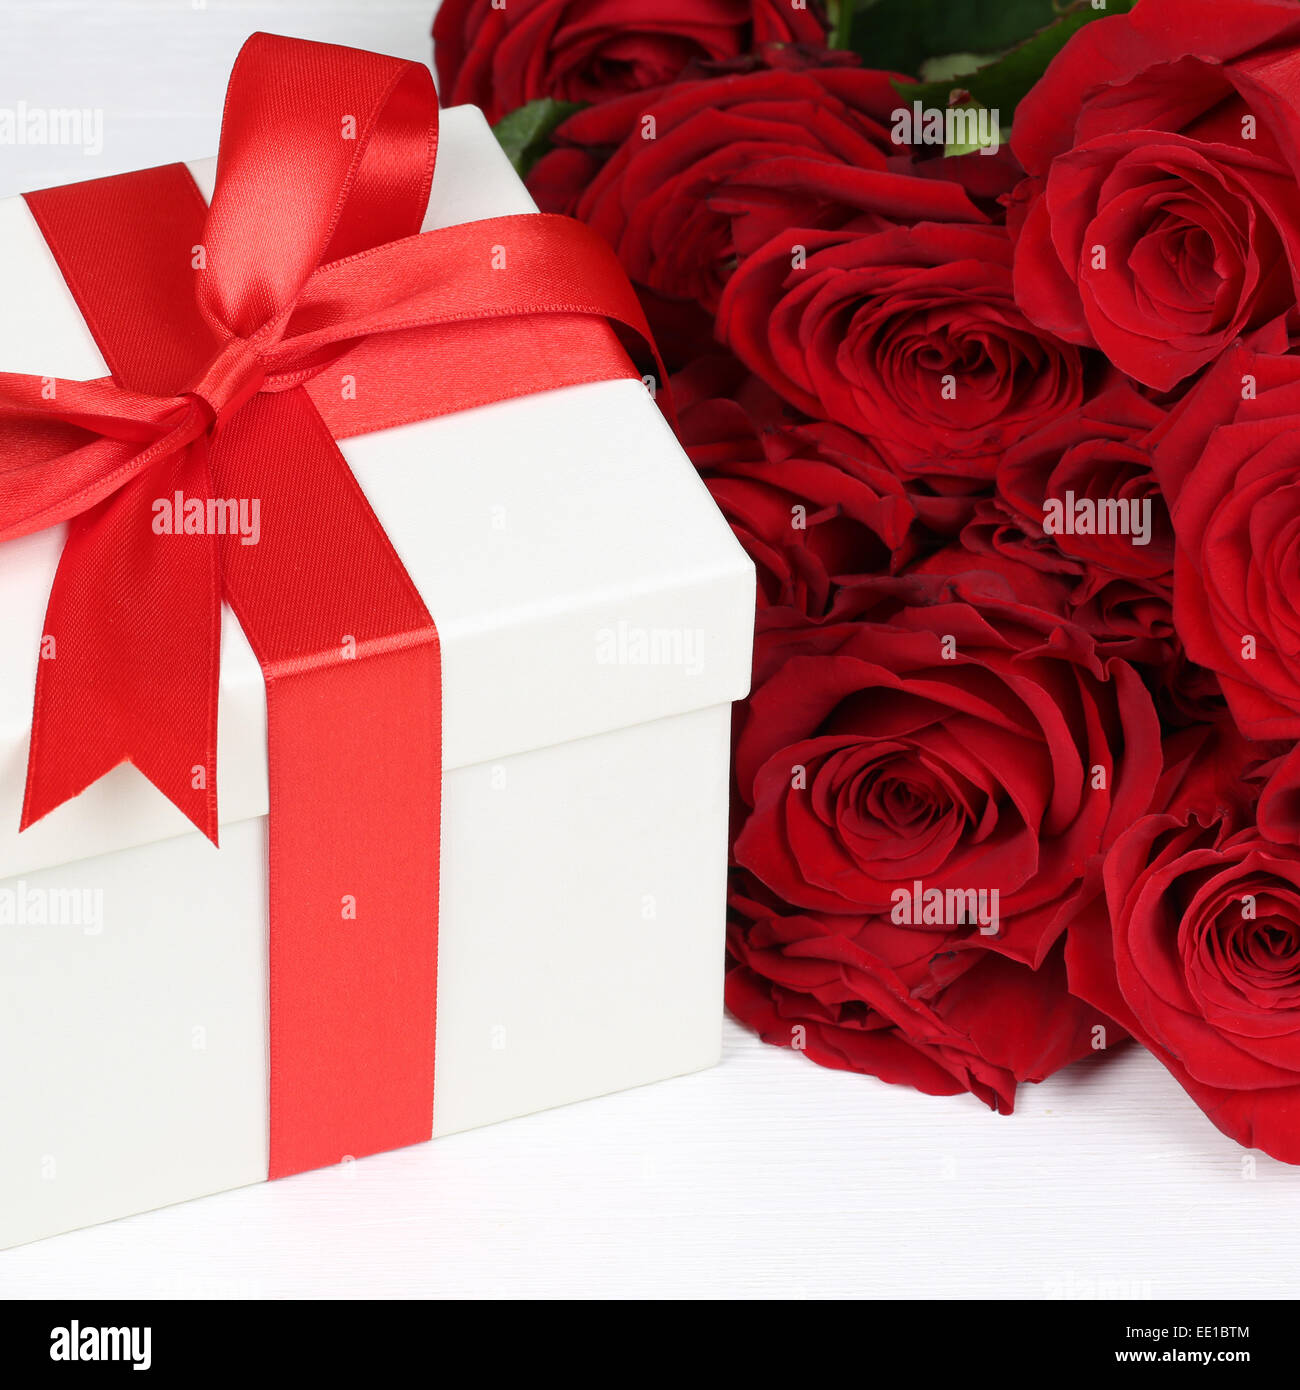 Present with roses flowers for birthday gifts valentines or stock present with roses flowers for birthday gifts valentines or mothers day izmirmasajfo